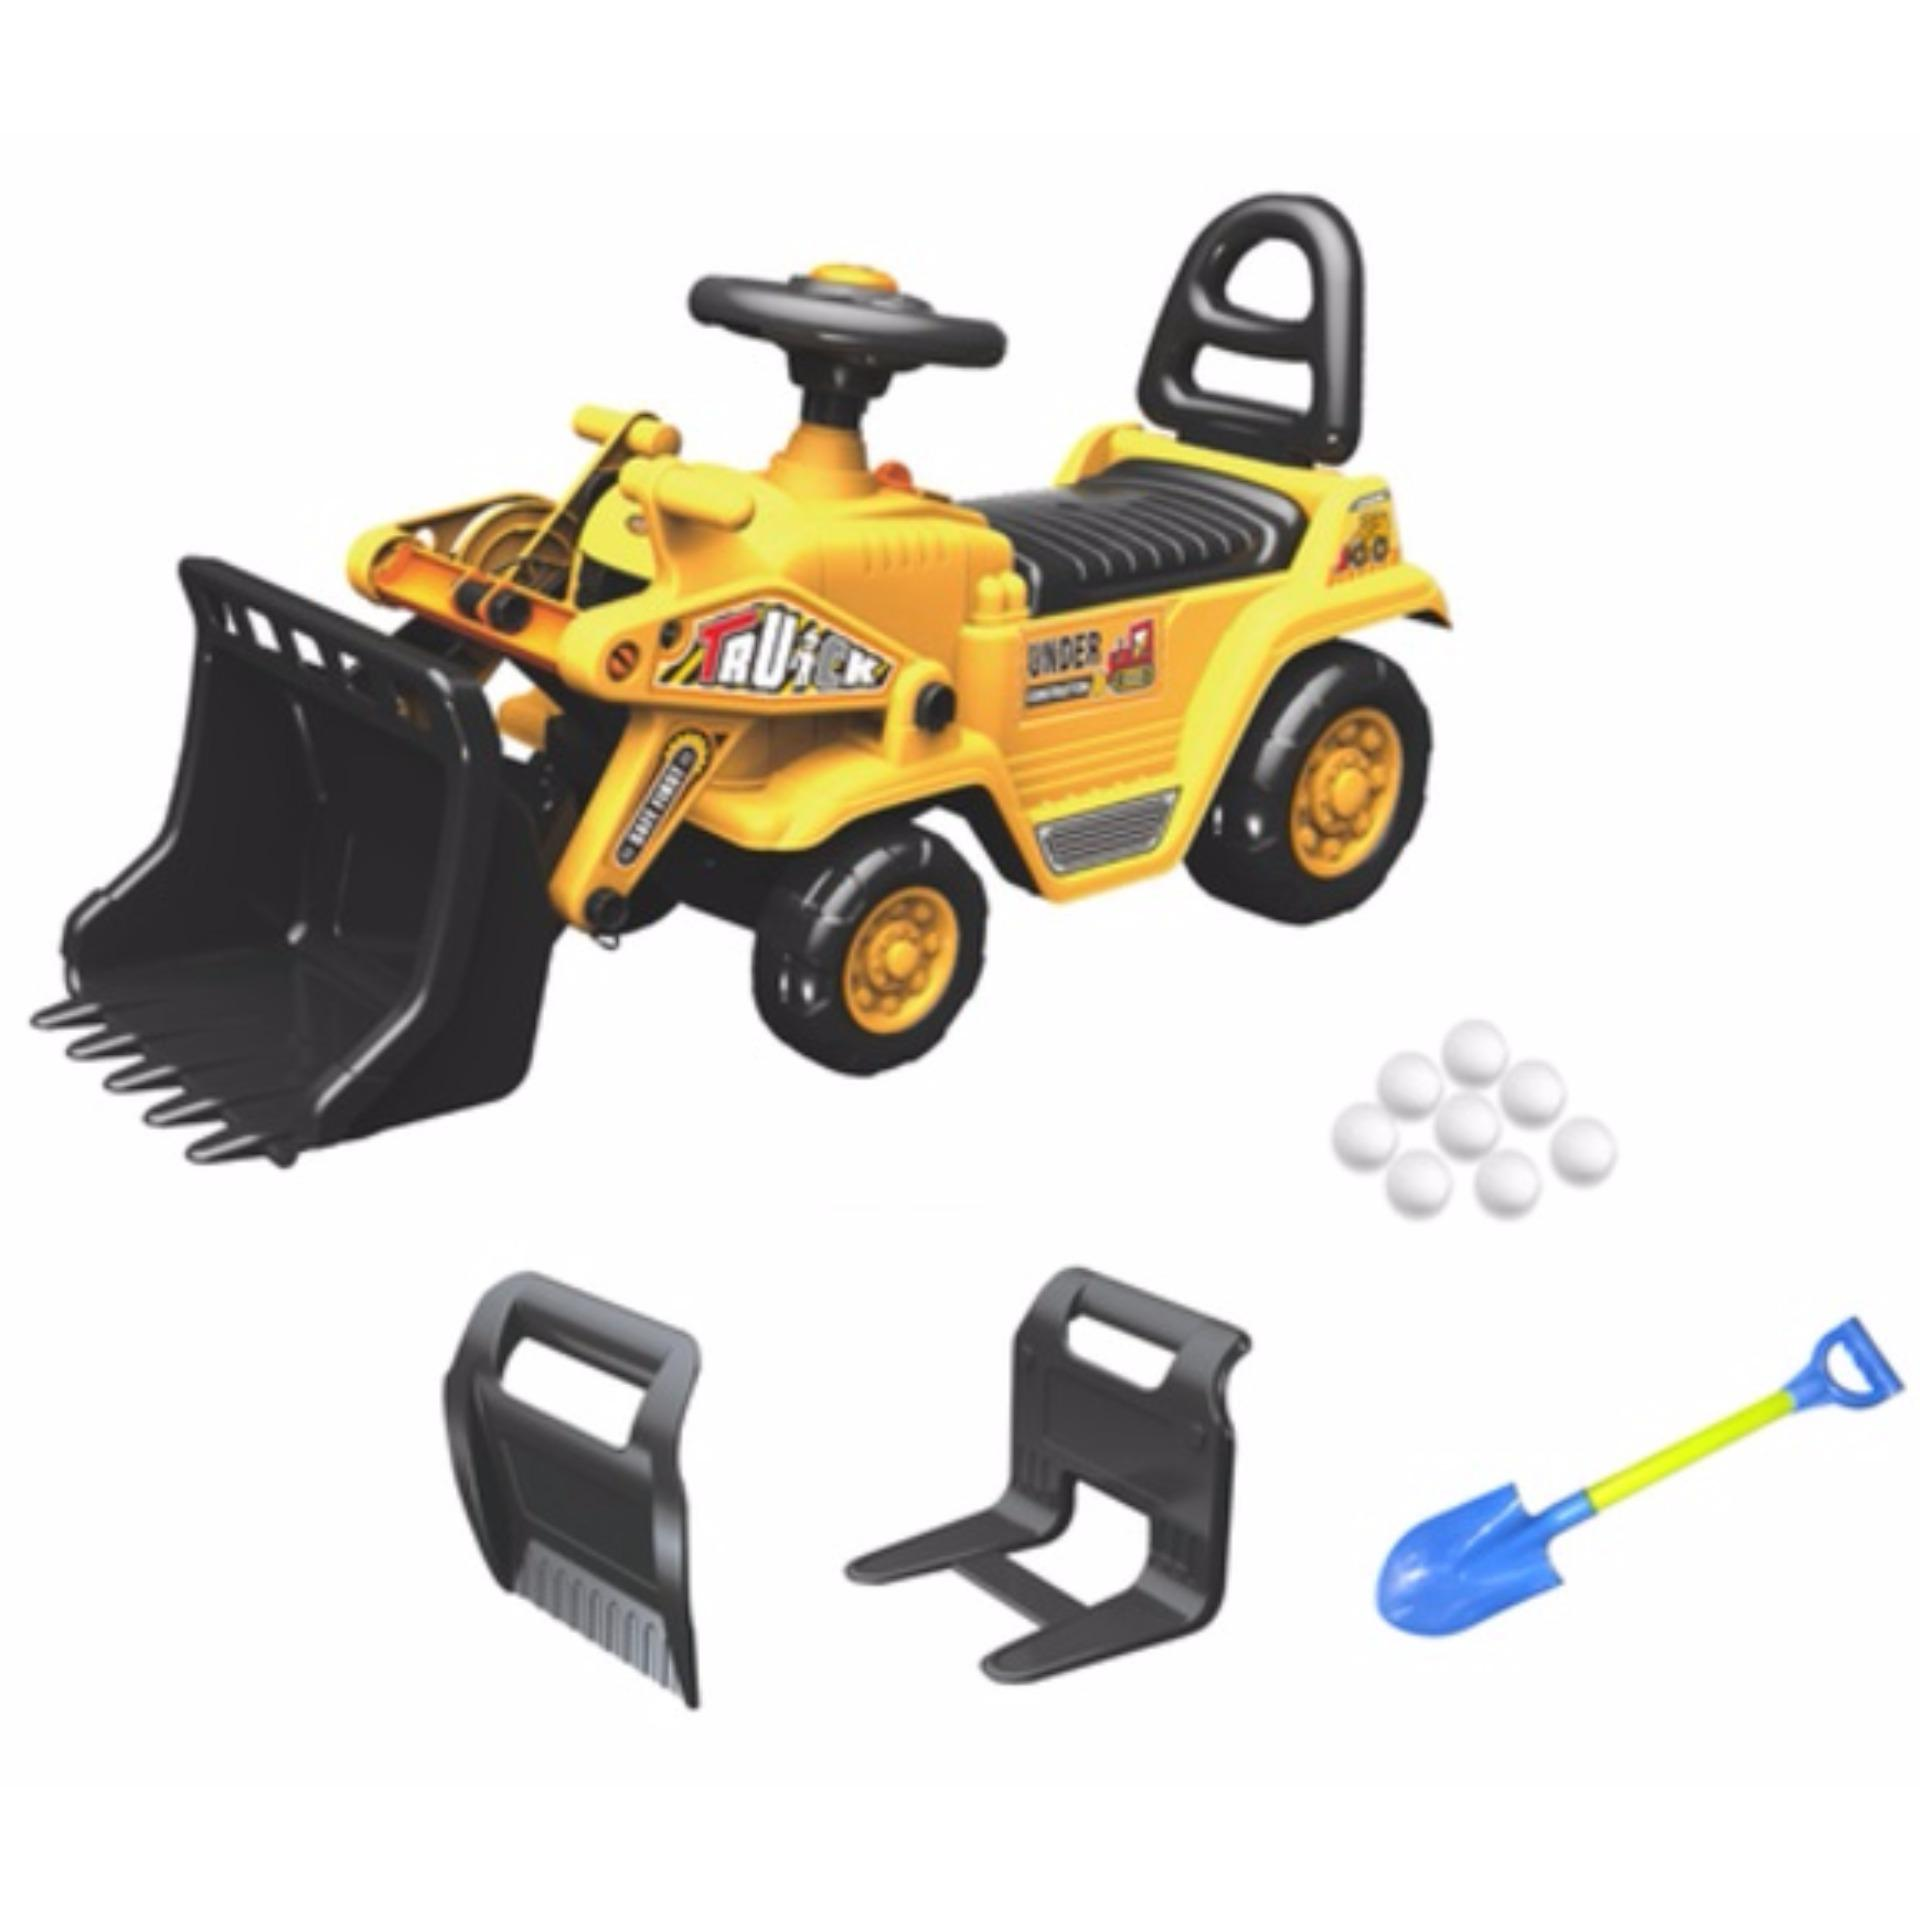 3 in 1 construction bulldozer fork lift digger ride on yd1004